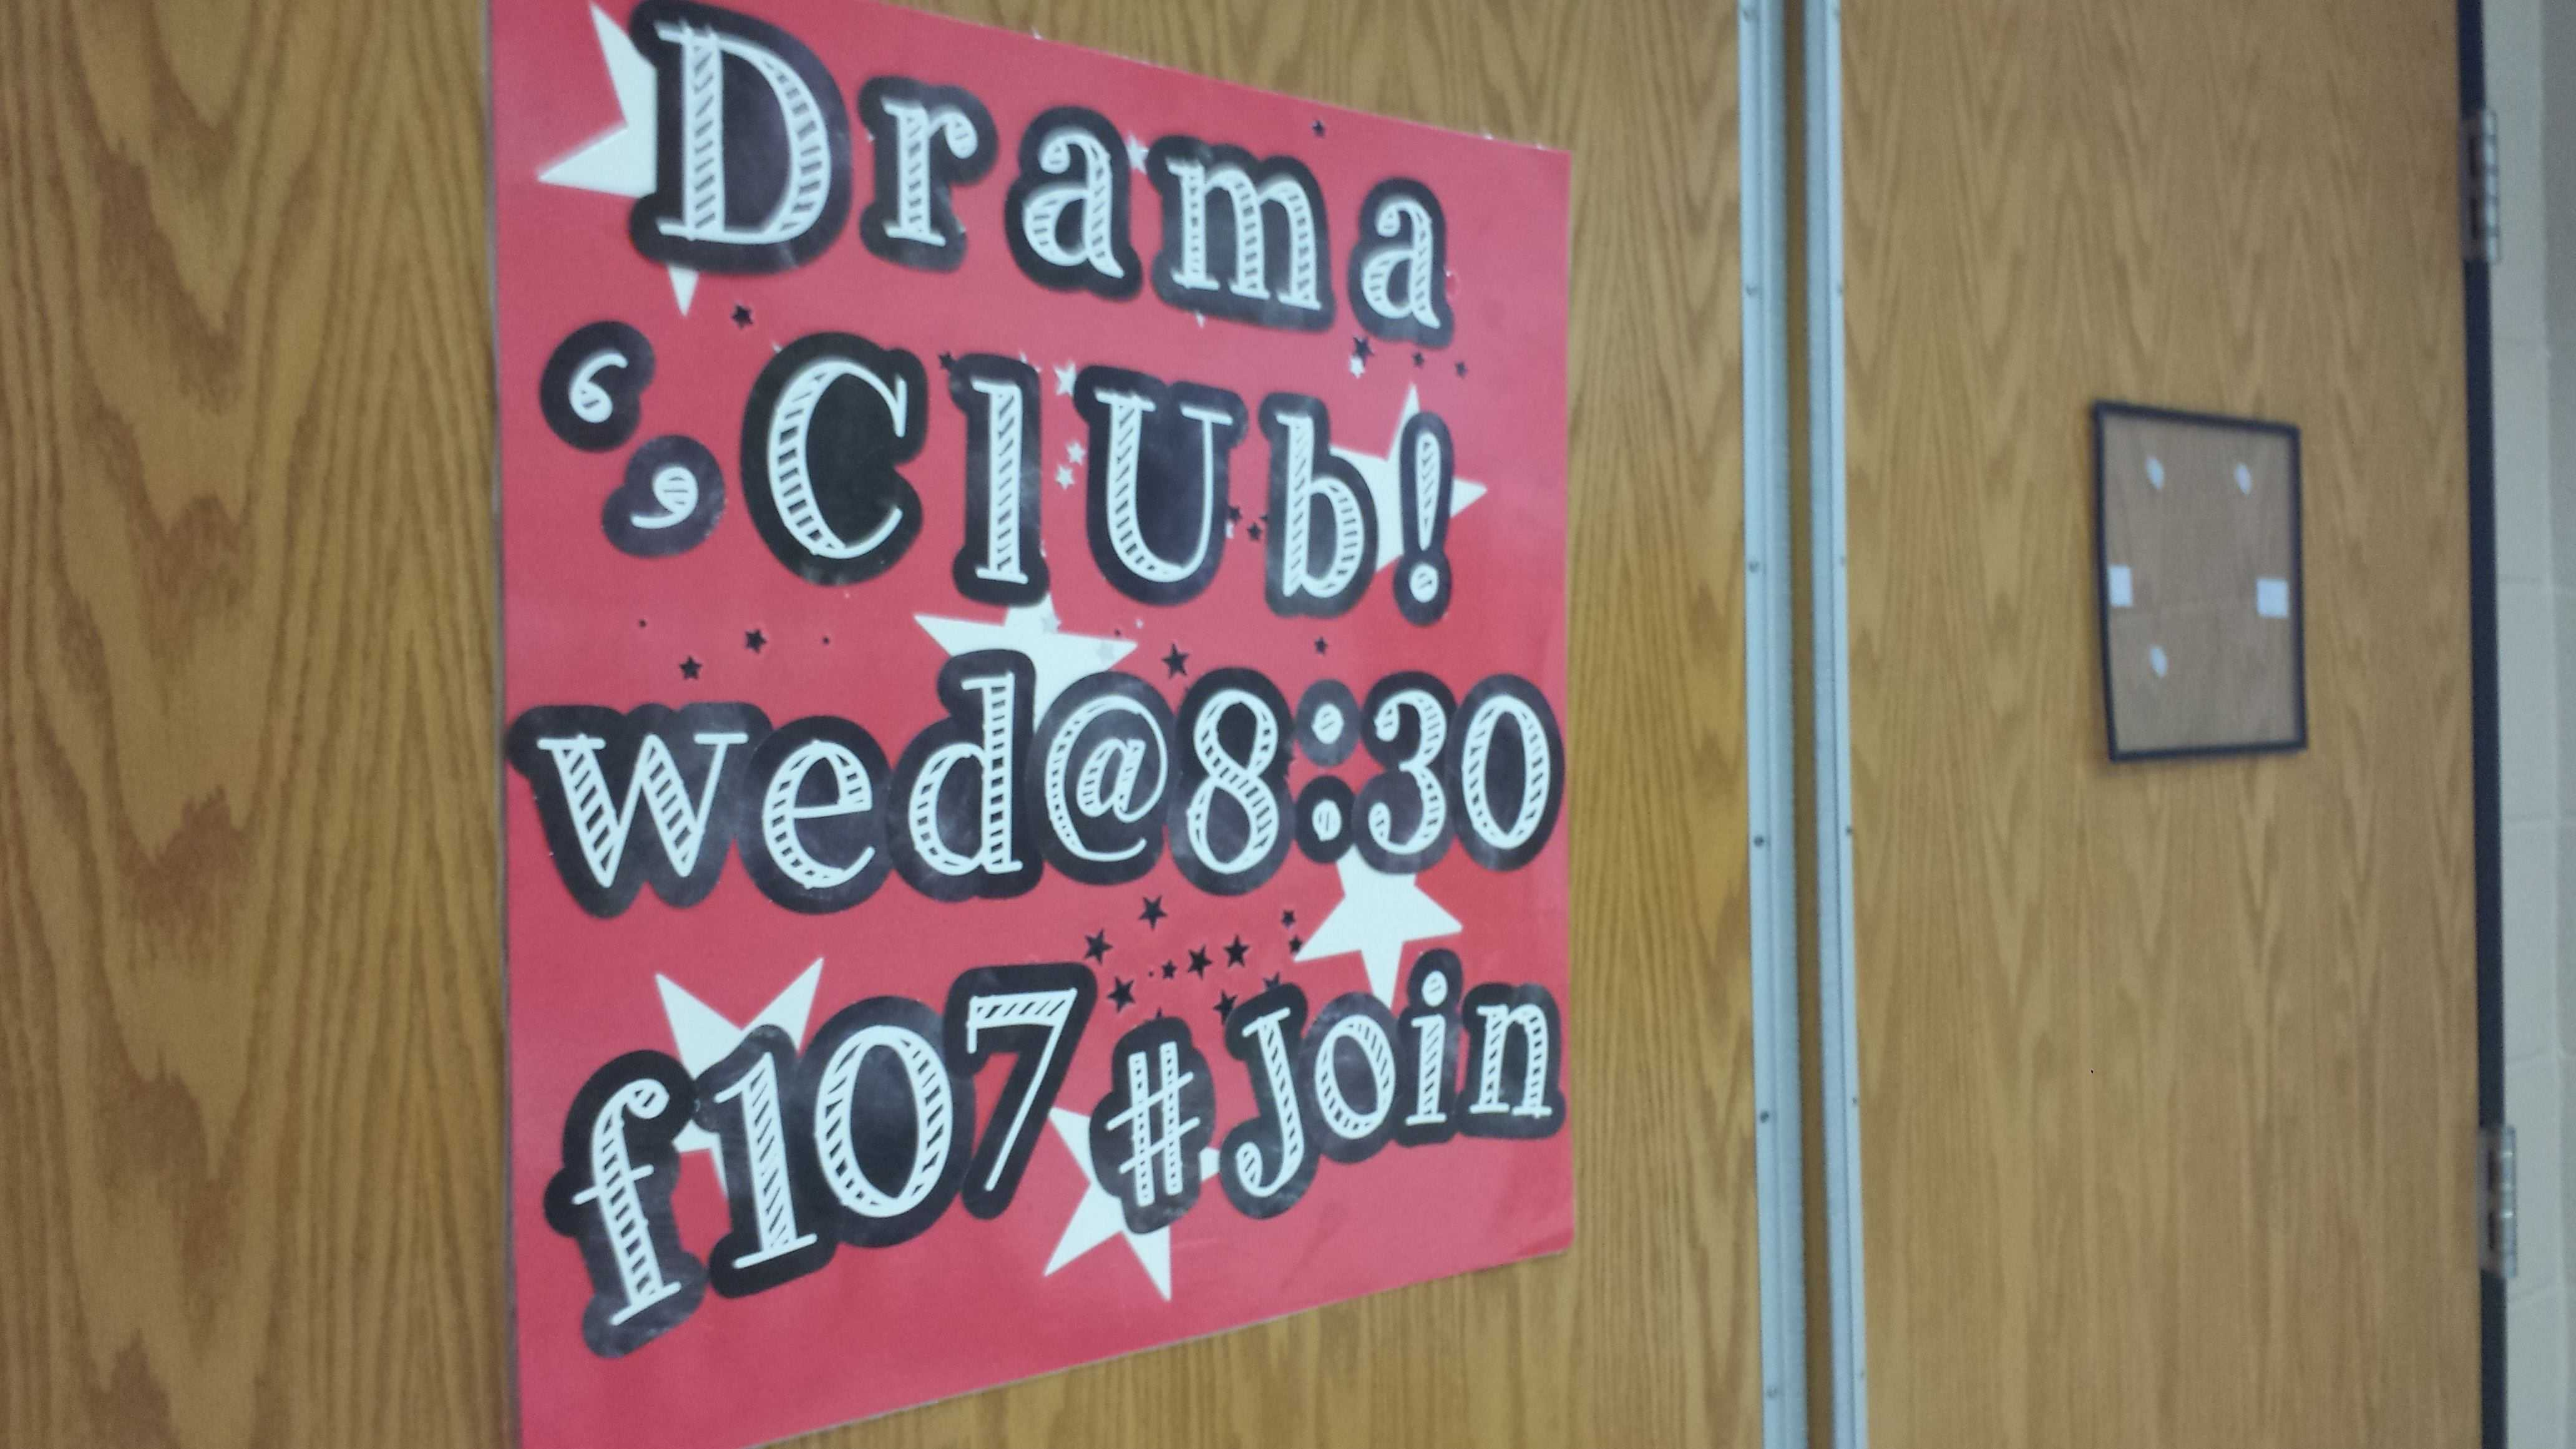 The Drama Club meets Wednesday at 8:30 in room F107. The Drama Club is headed by theater teacher Stephanie Winters.